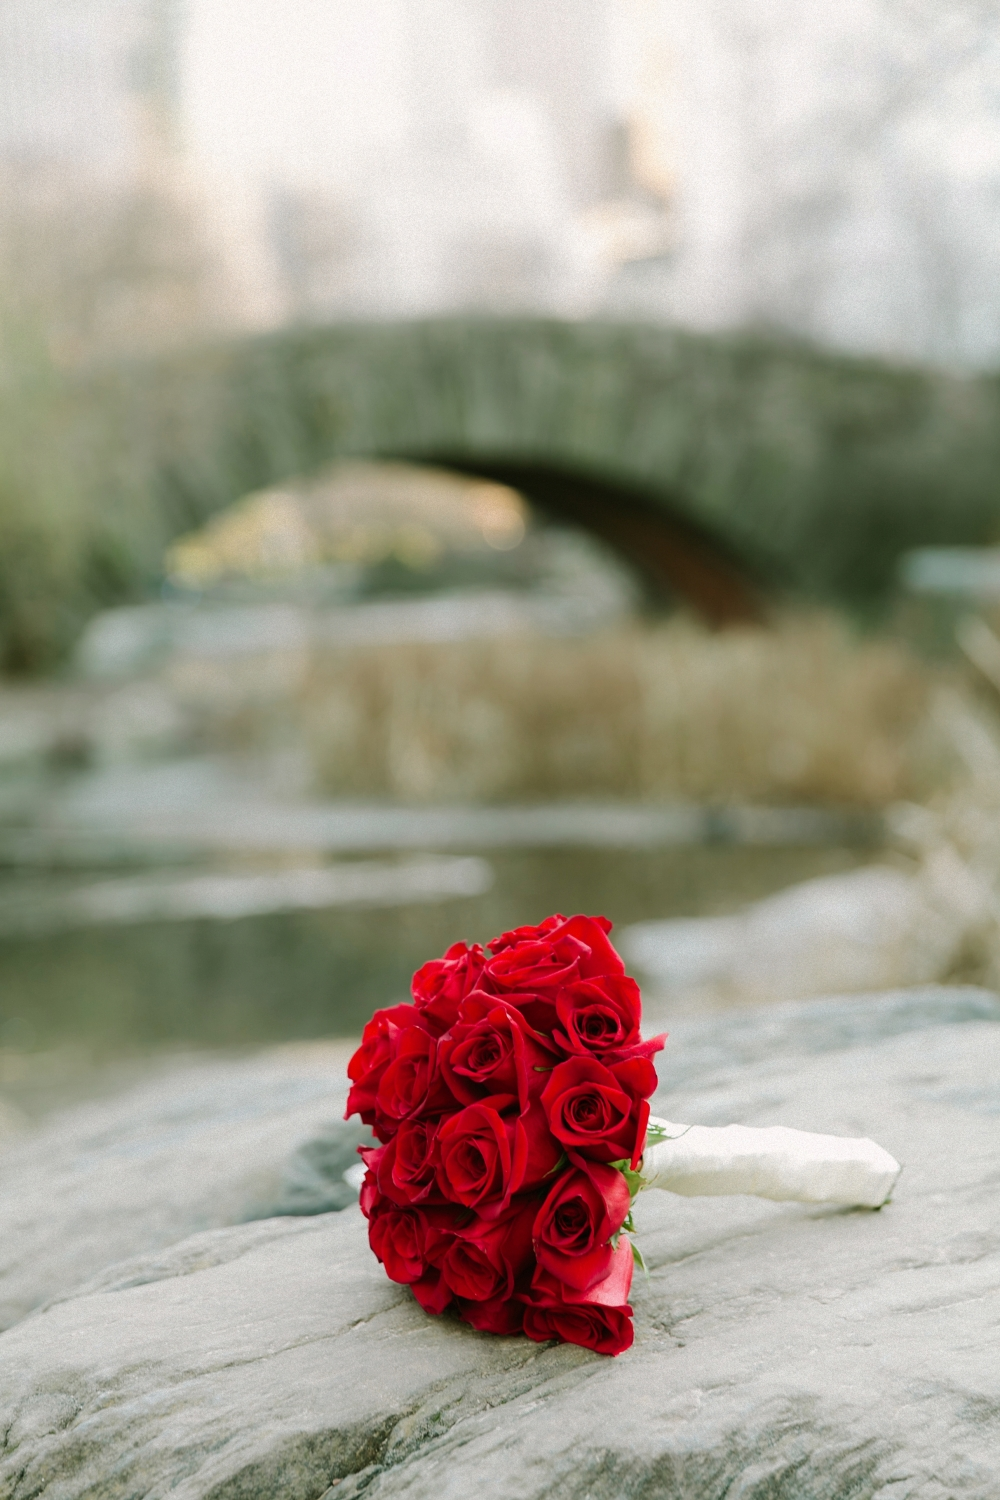 gapstow_bridge_elopement_RJ-90